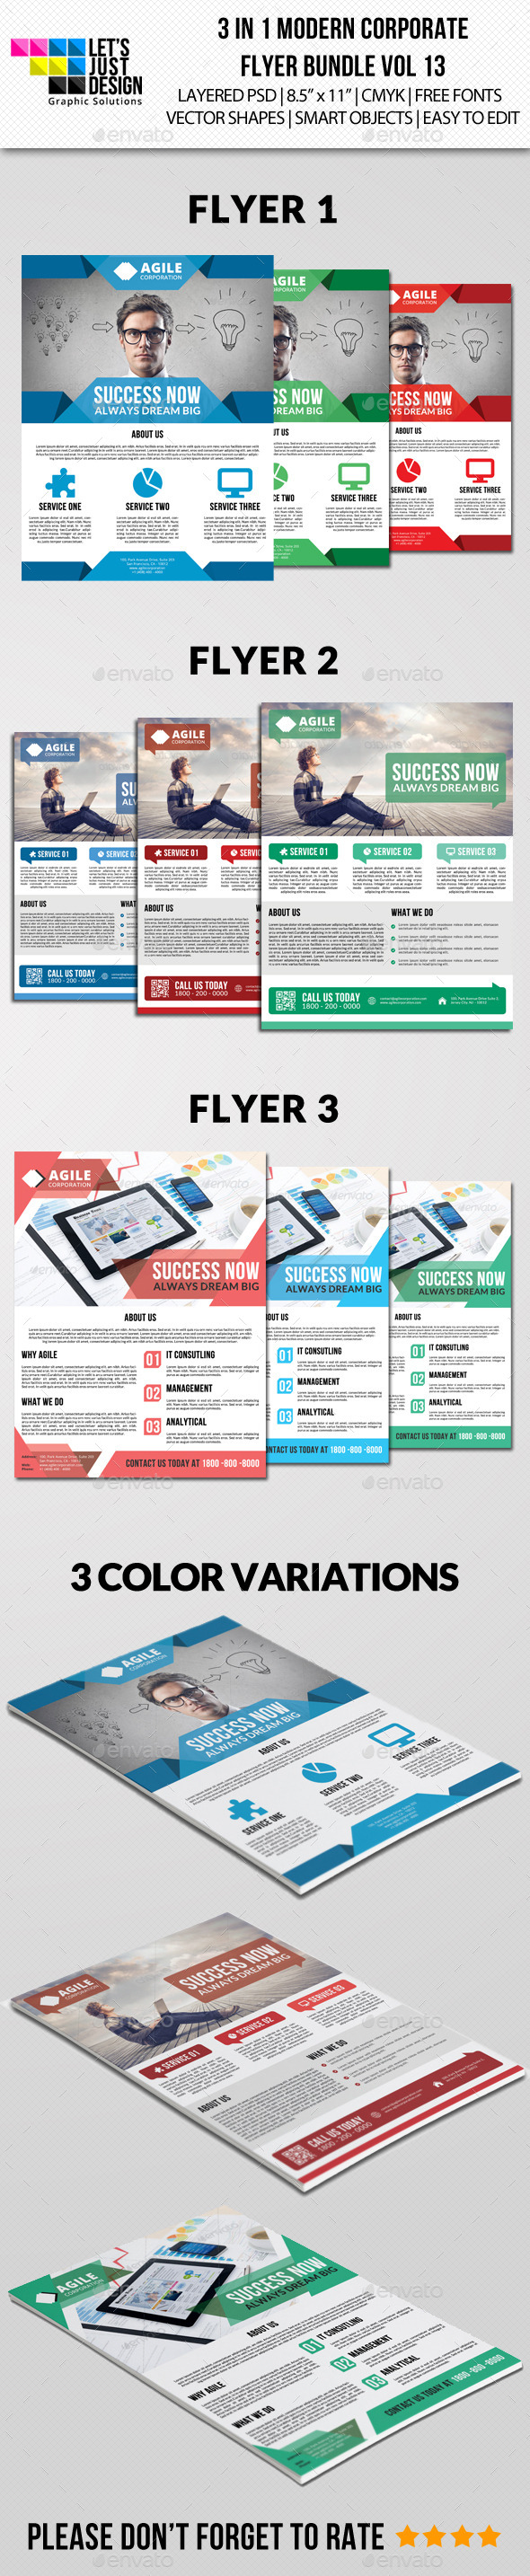 Modern Corporate Flyer Pack Vol 12 - Corporate Flyers